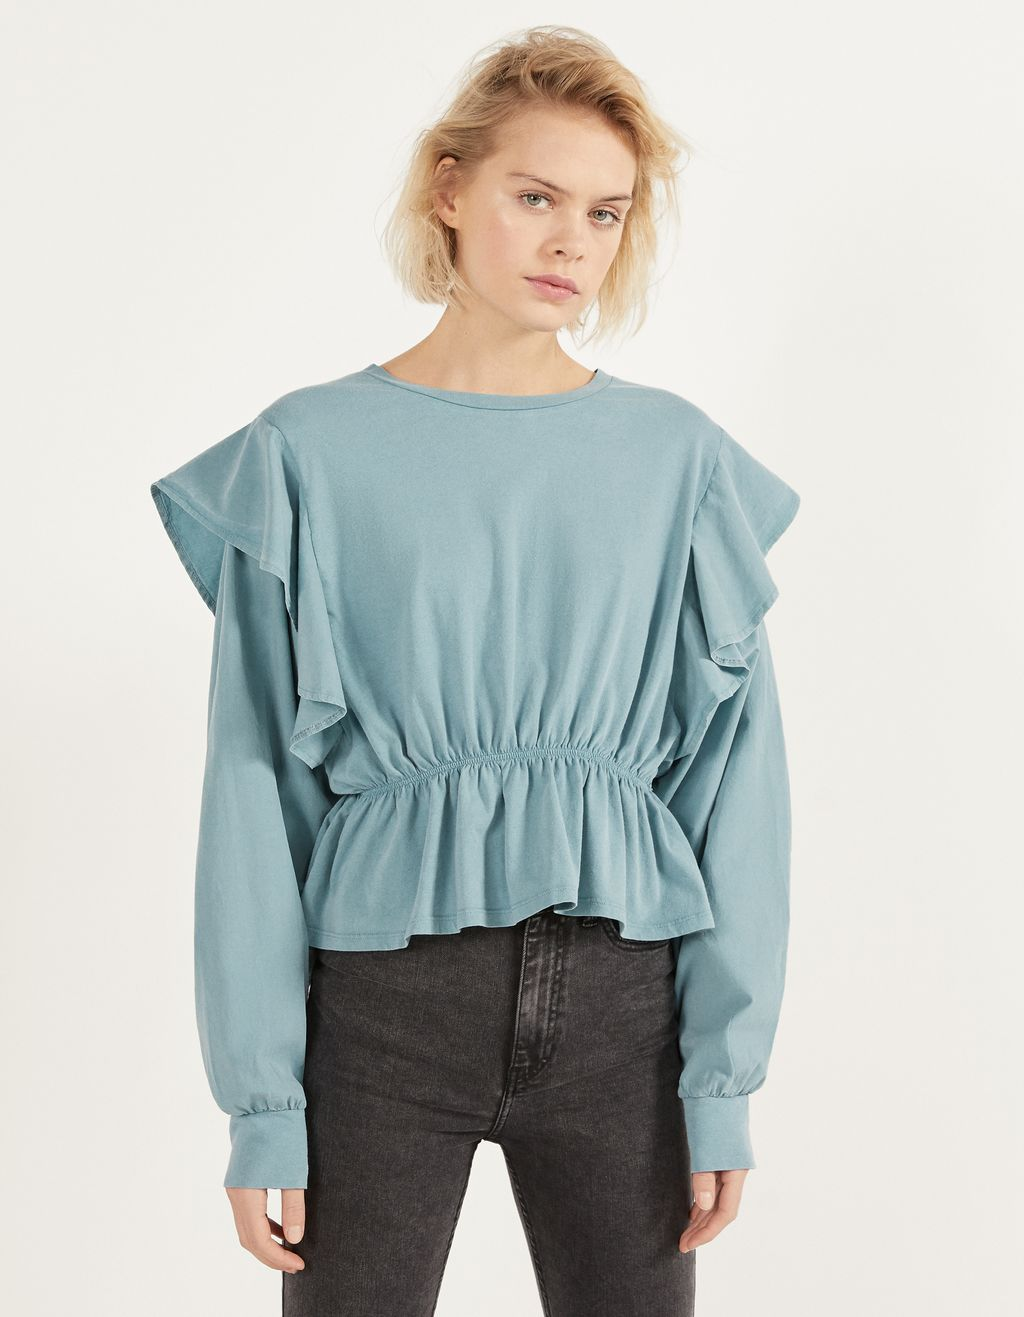 Top with ruffles and shirring